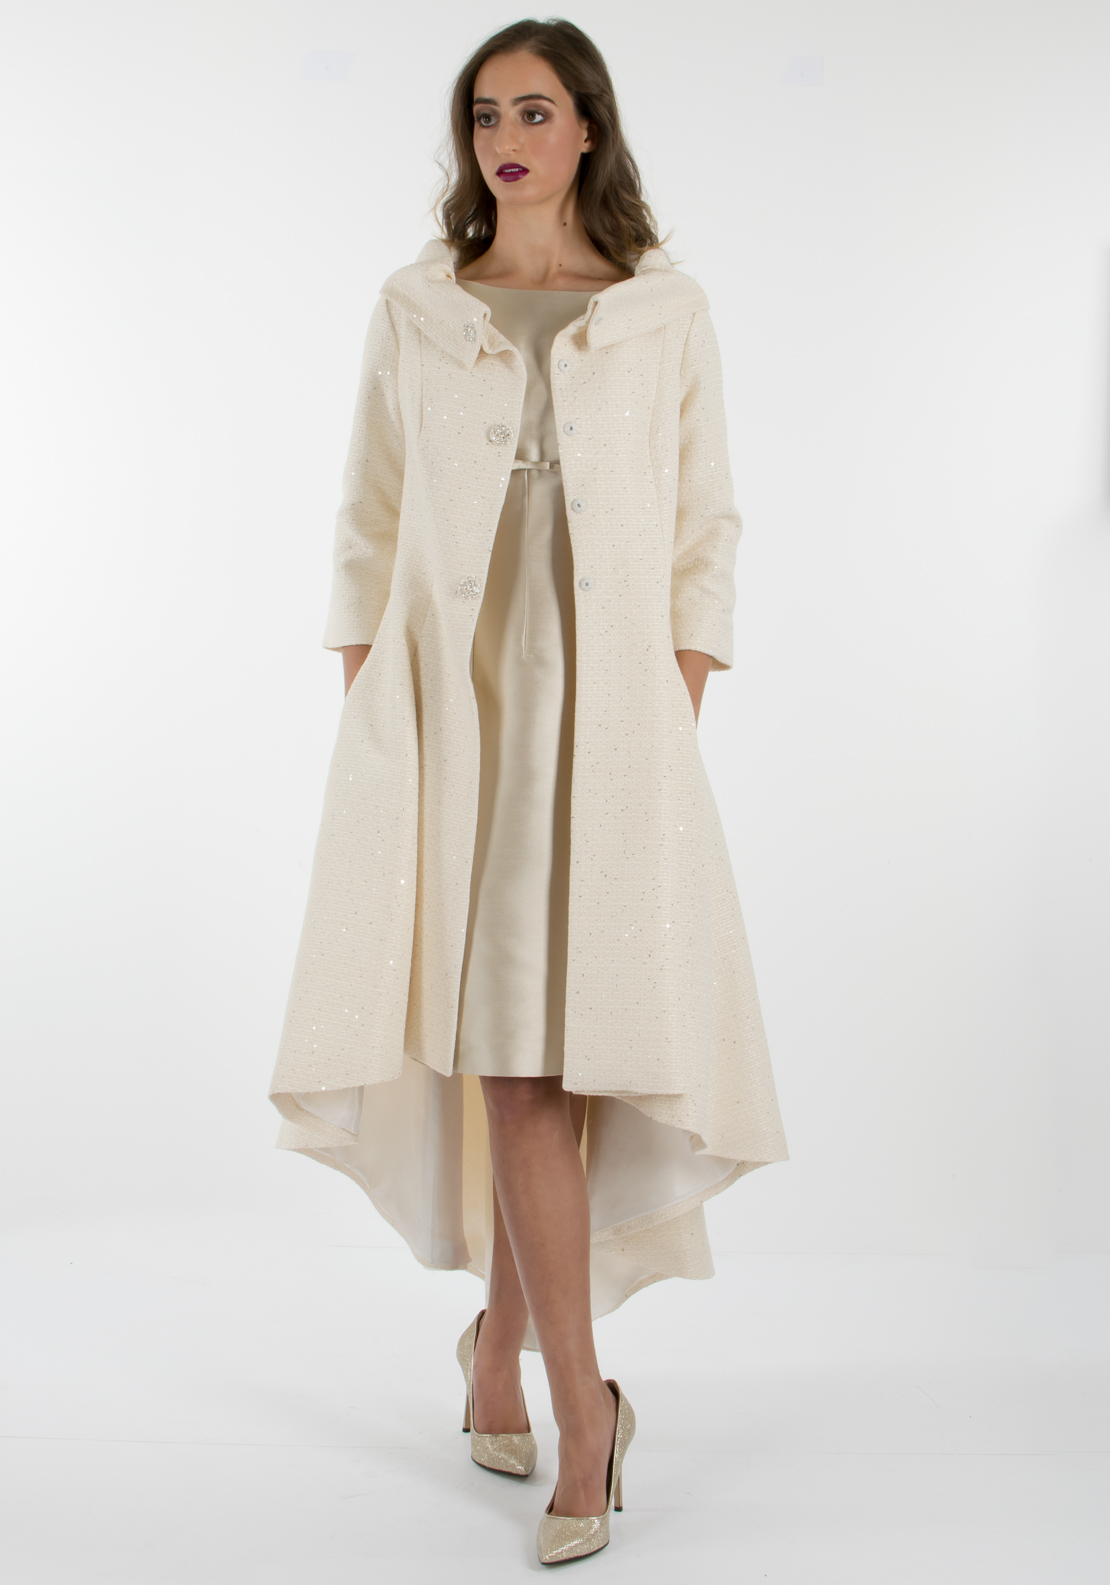 Fely Campo Silk Dress & Coat Outfit, Cream